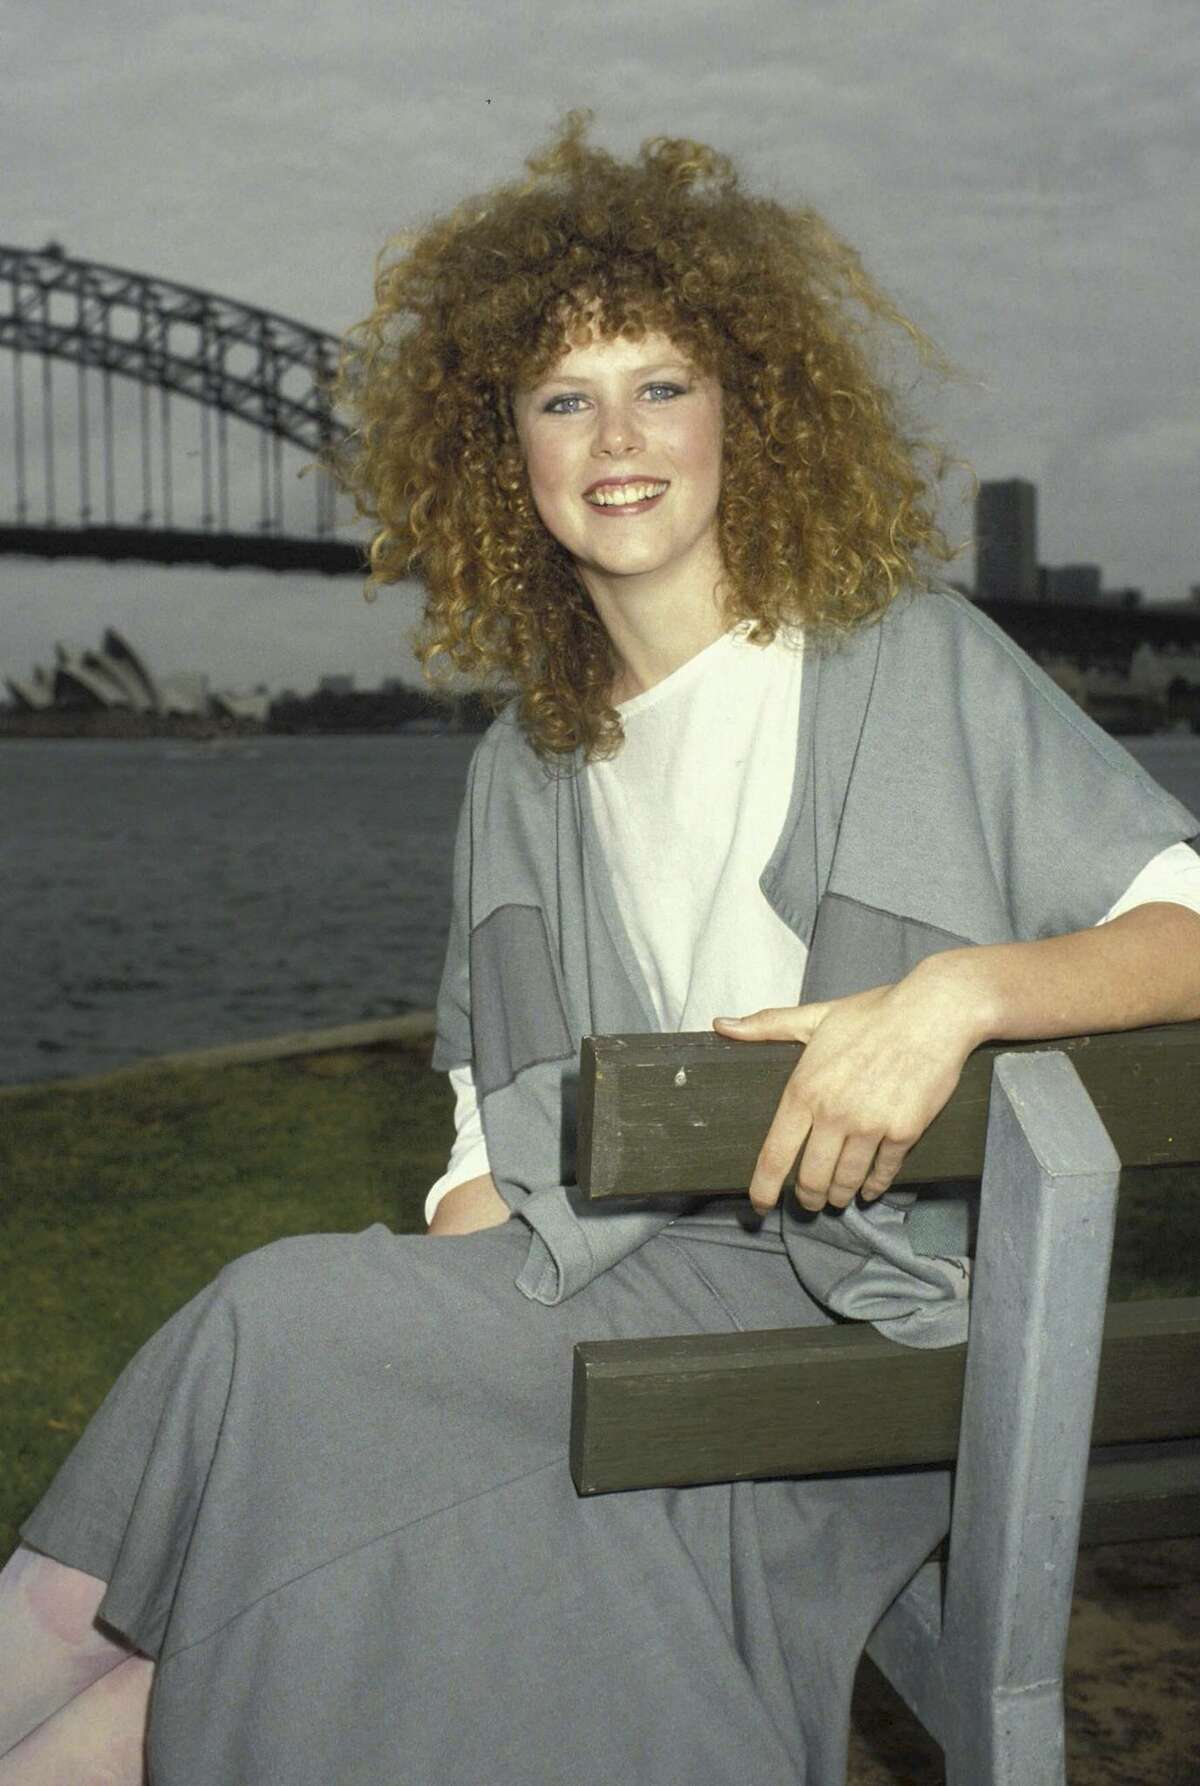 Australian actress Nicole Kidman at a private photo session following the release of her movie,